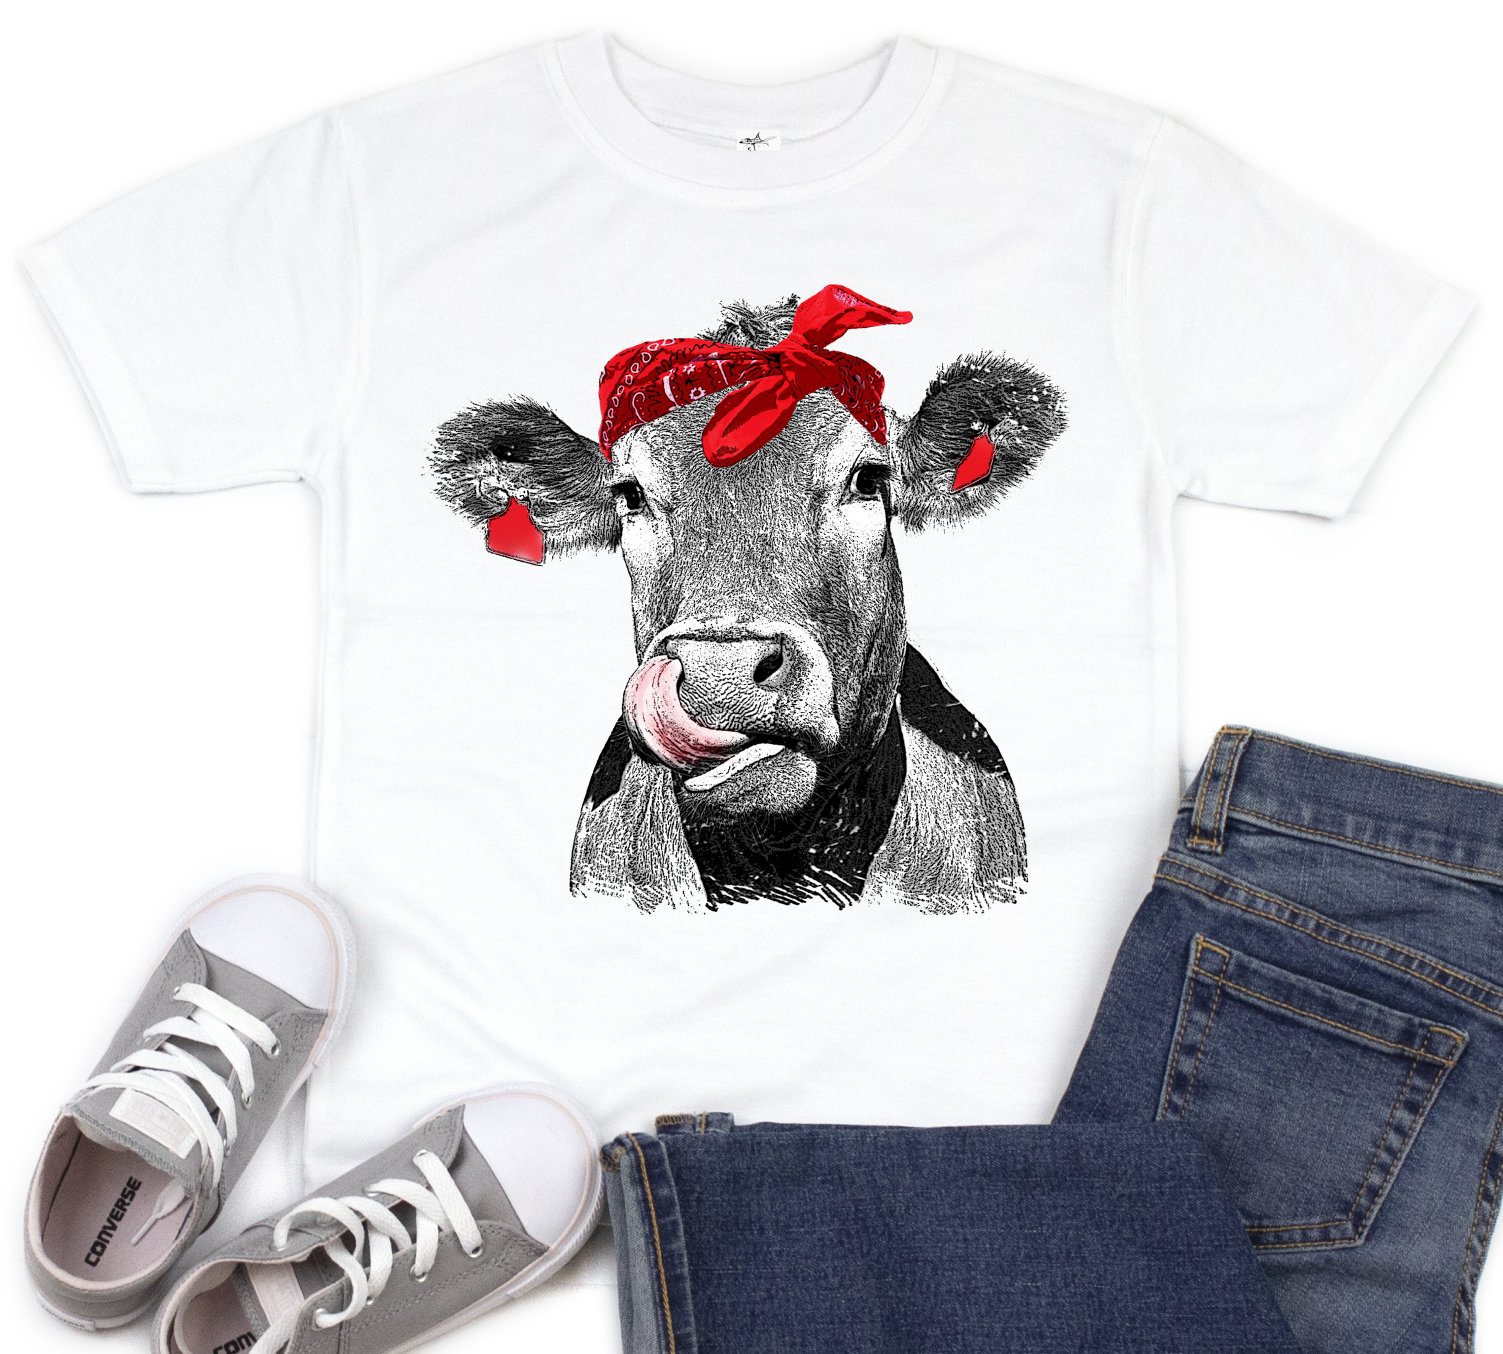 4d3446de Cow Kisses kids Shirt, Cow Shirt, Licking Cow, Cow Lover, Funny Cow, Infant  Cow, Cow With Bandanna, Farm, Country, Girls, Kids Cow Shirt